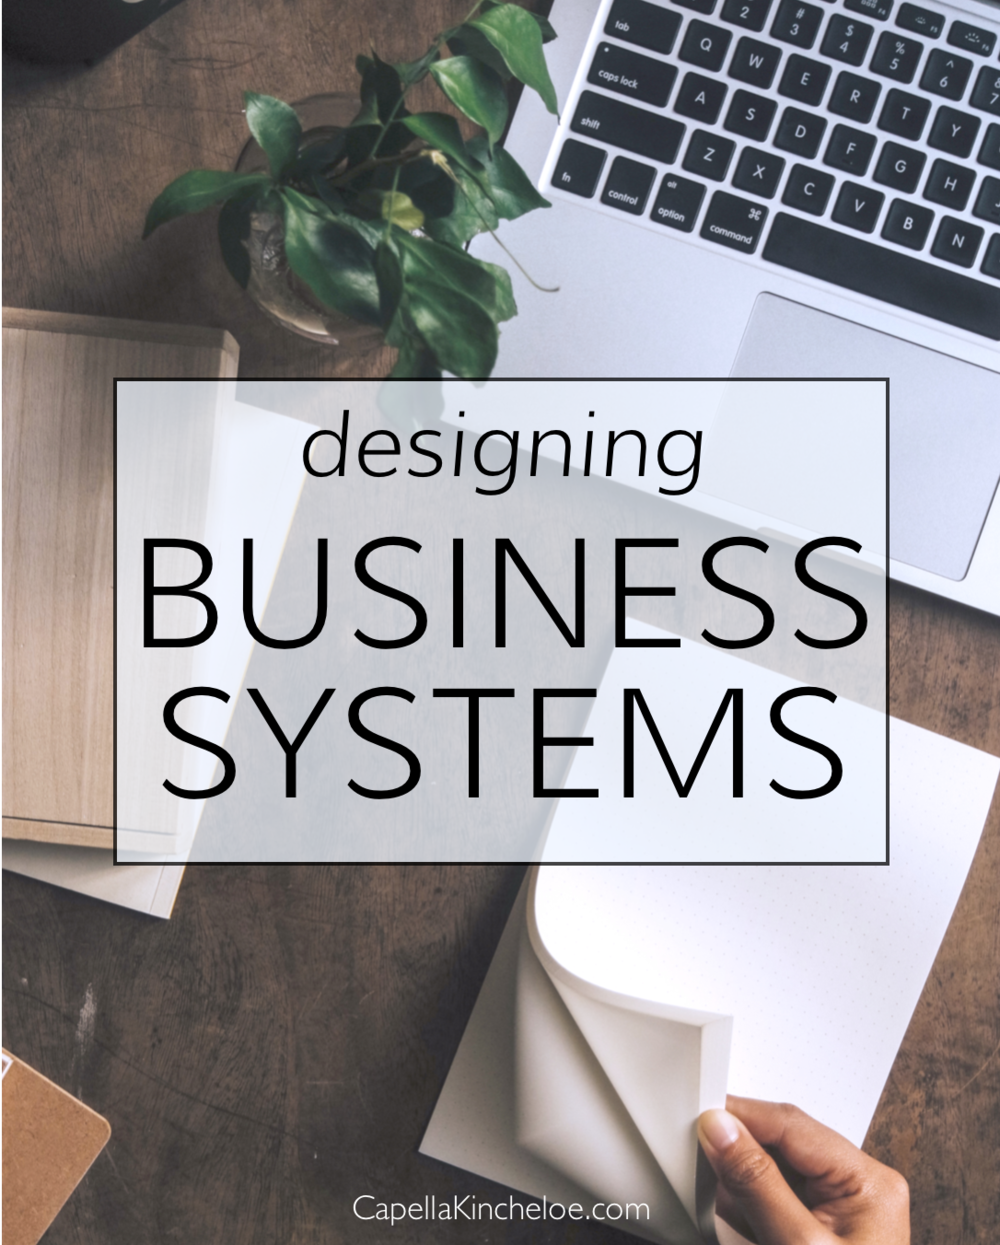 Designing business systems capella kincheloe interior design